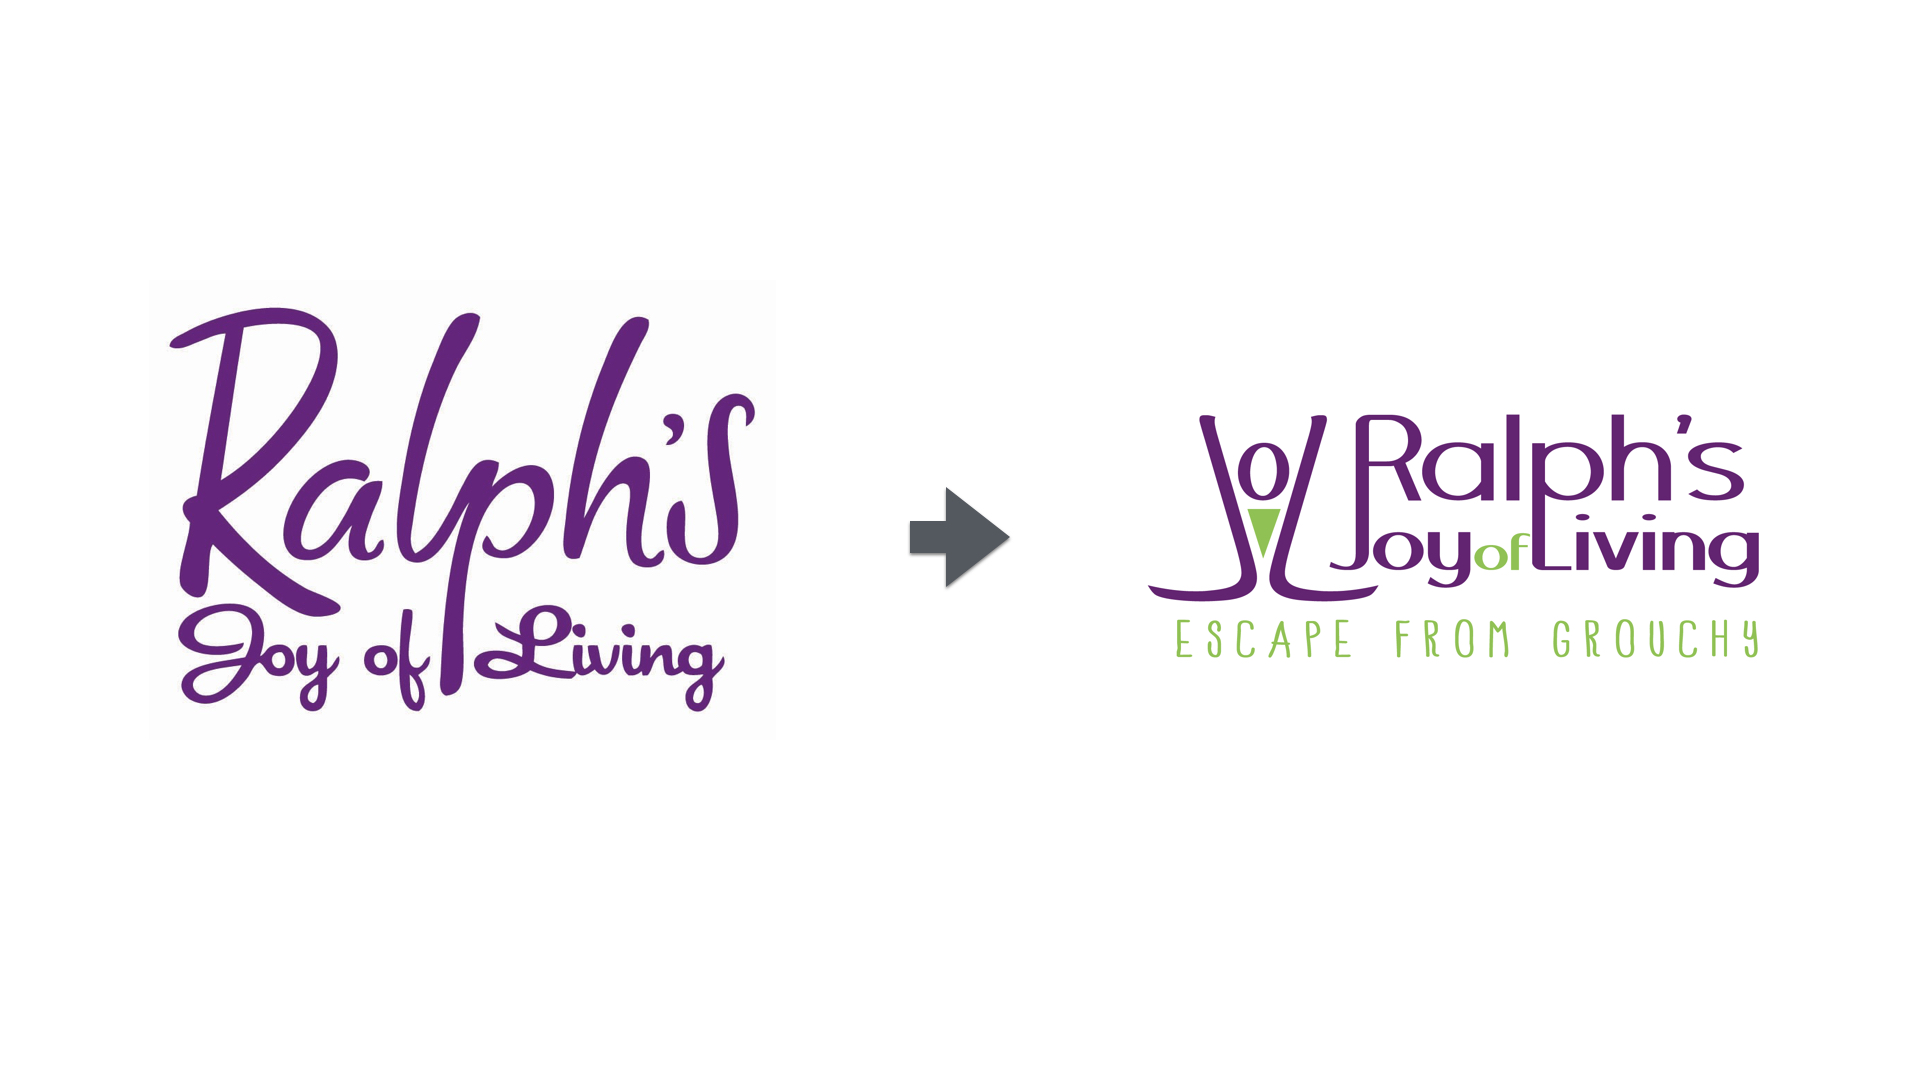 Logos compared - Ralph's Joy of Living